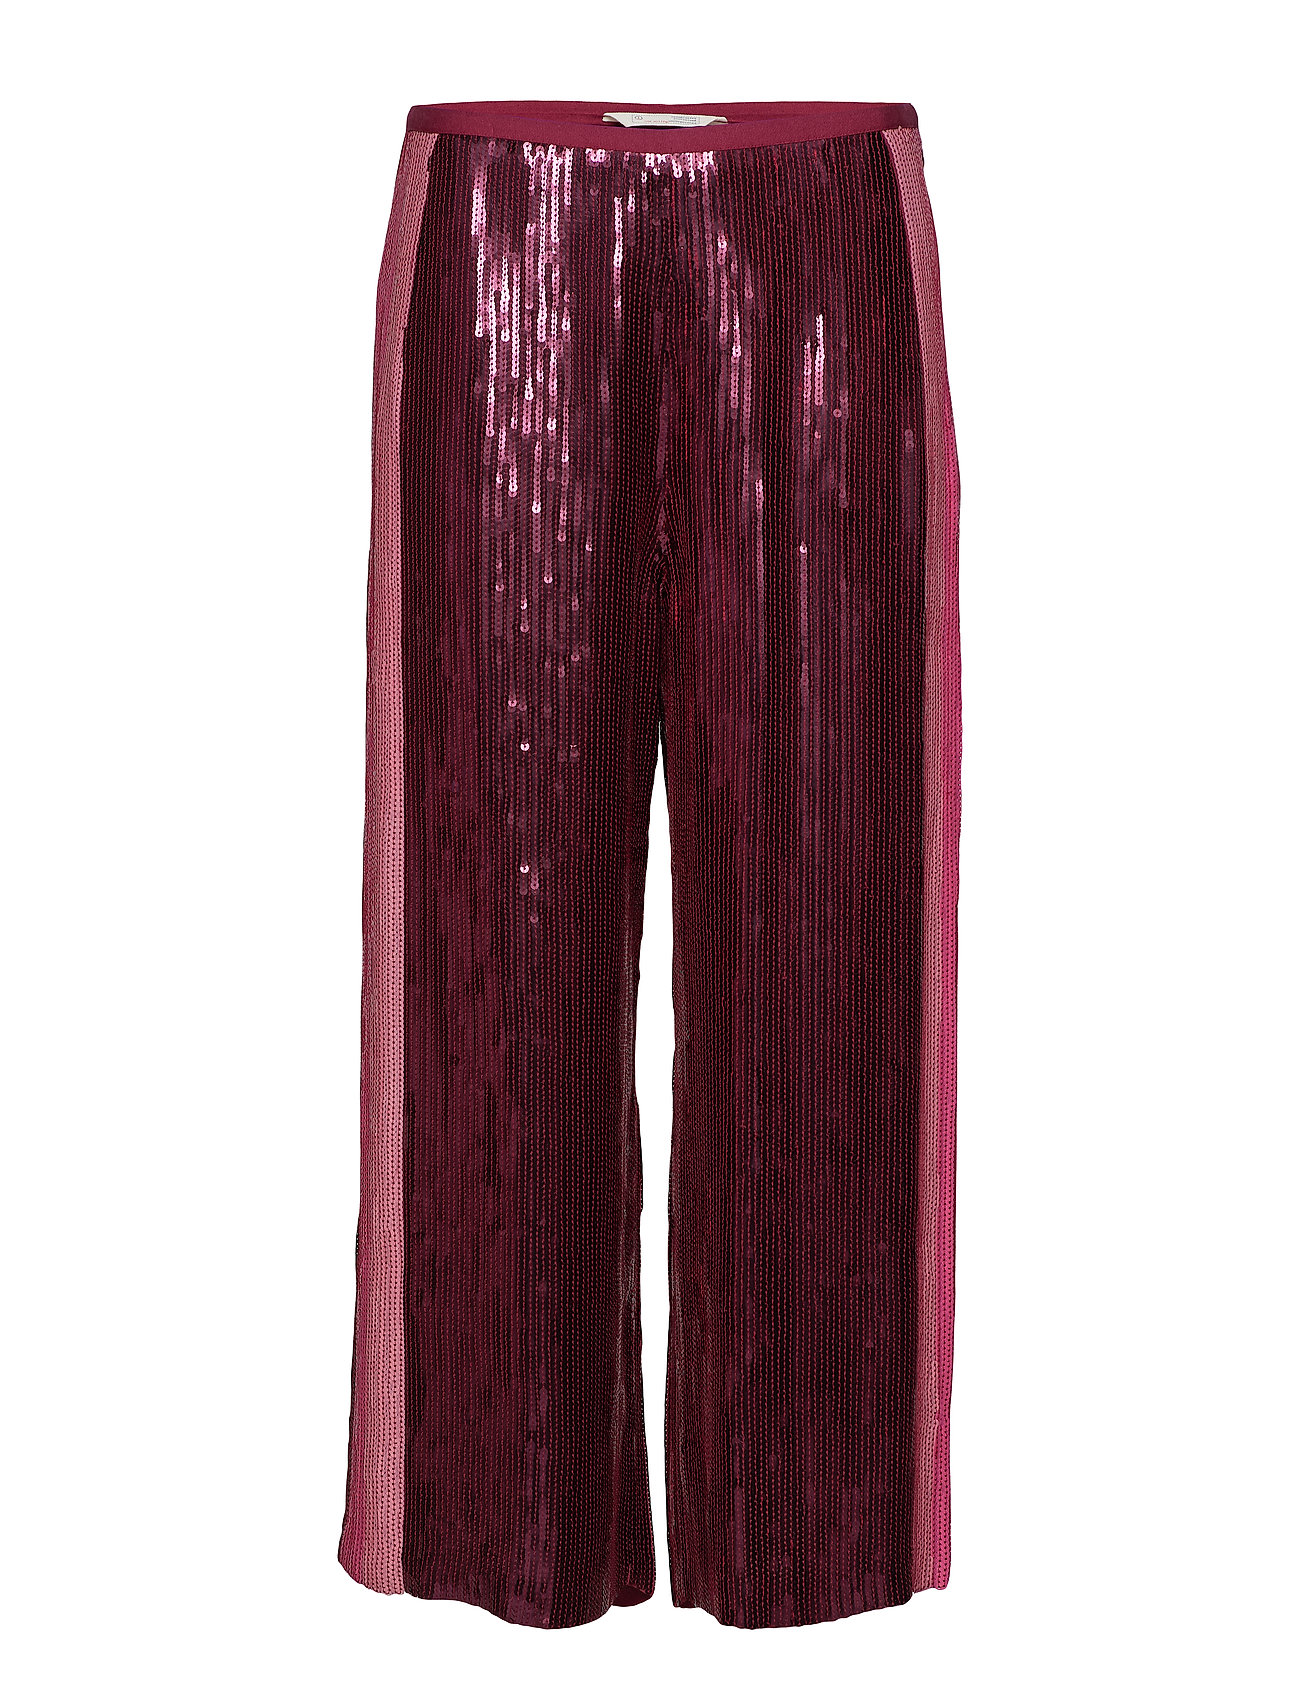 ODD MOLLY fast lane pants - WINE